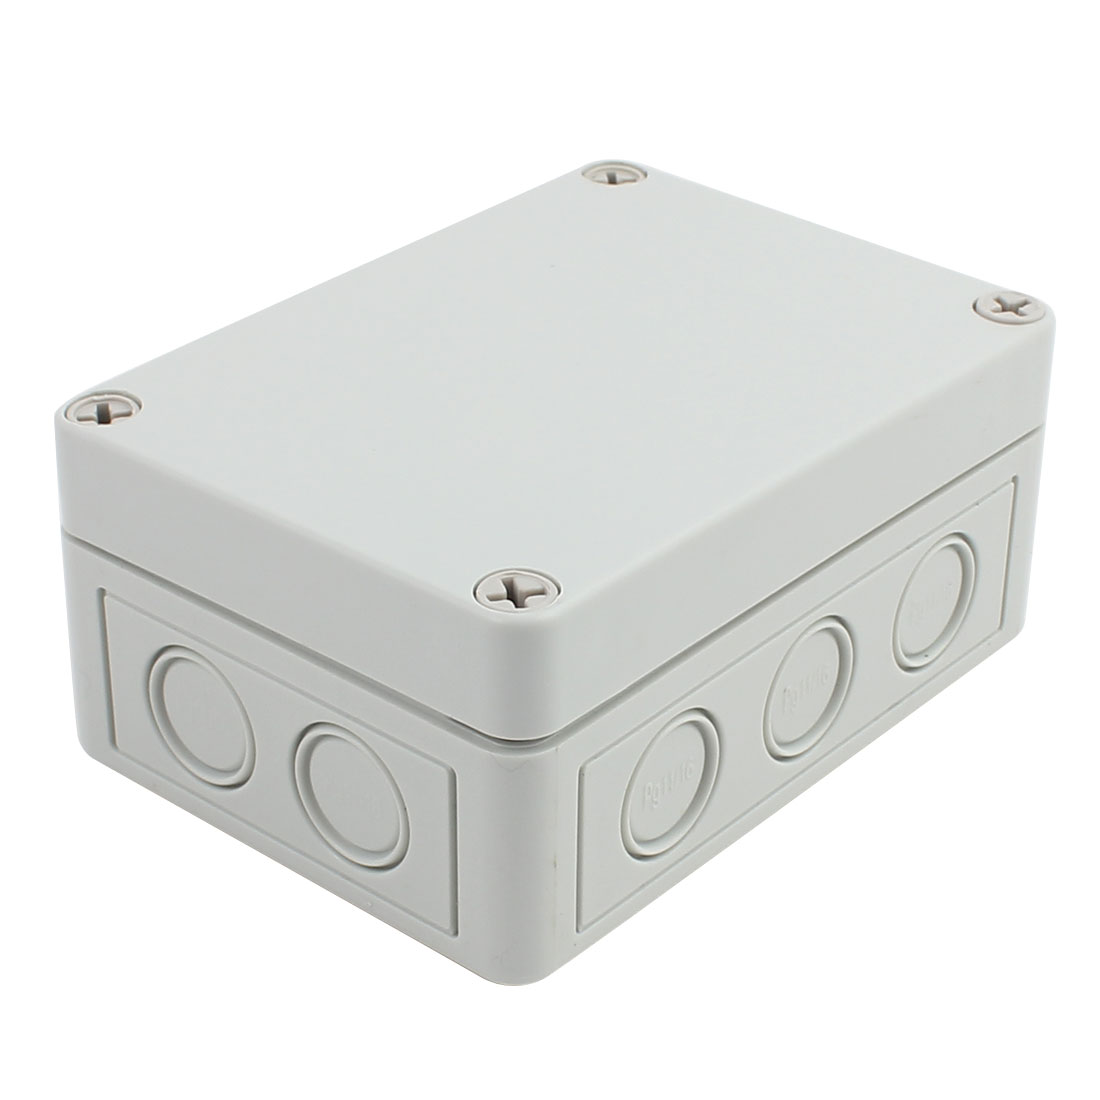 130mm x 93mm x 57mm ABS Enclosure DIY Junction Box Case Gray